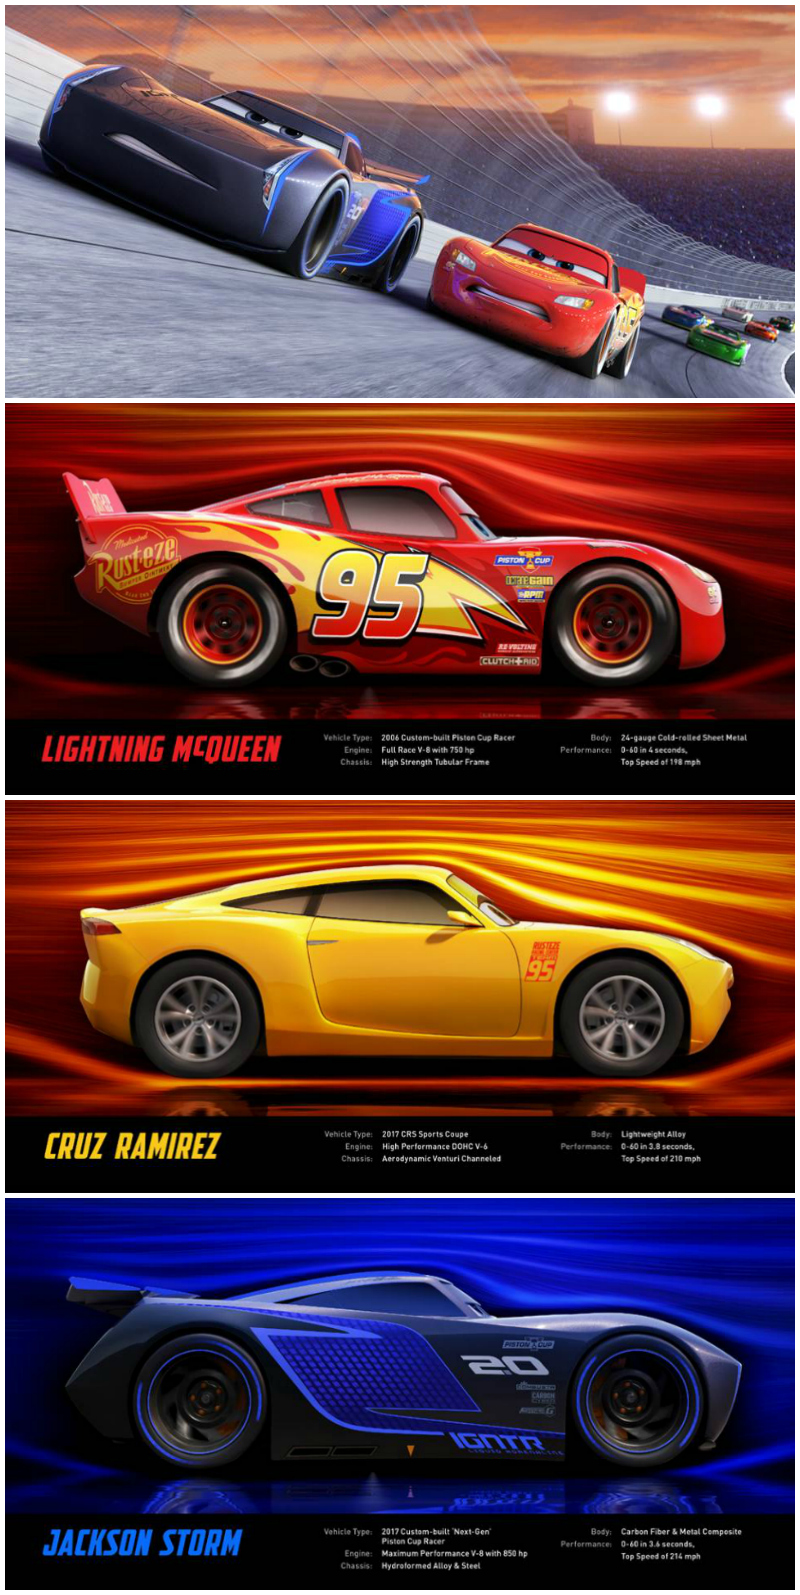 Meet The Characters in Disney's Cars 3